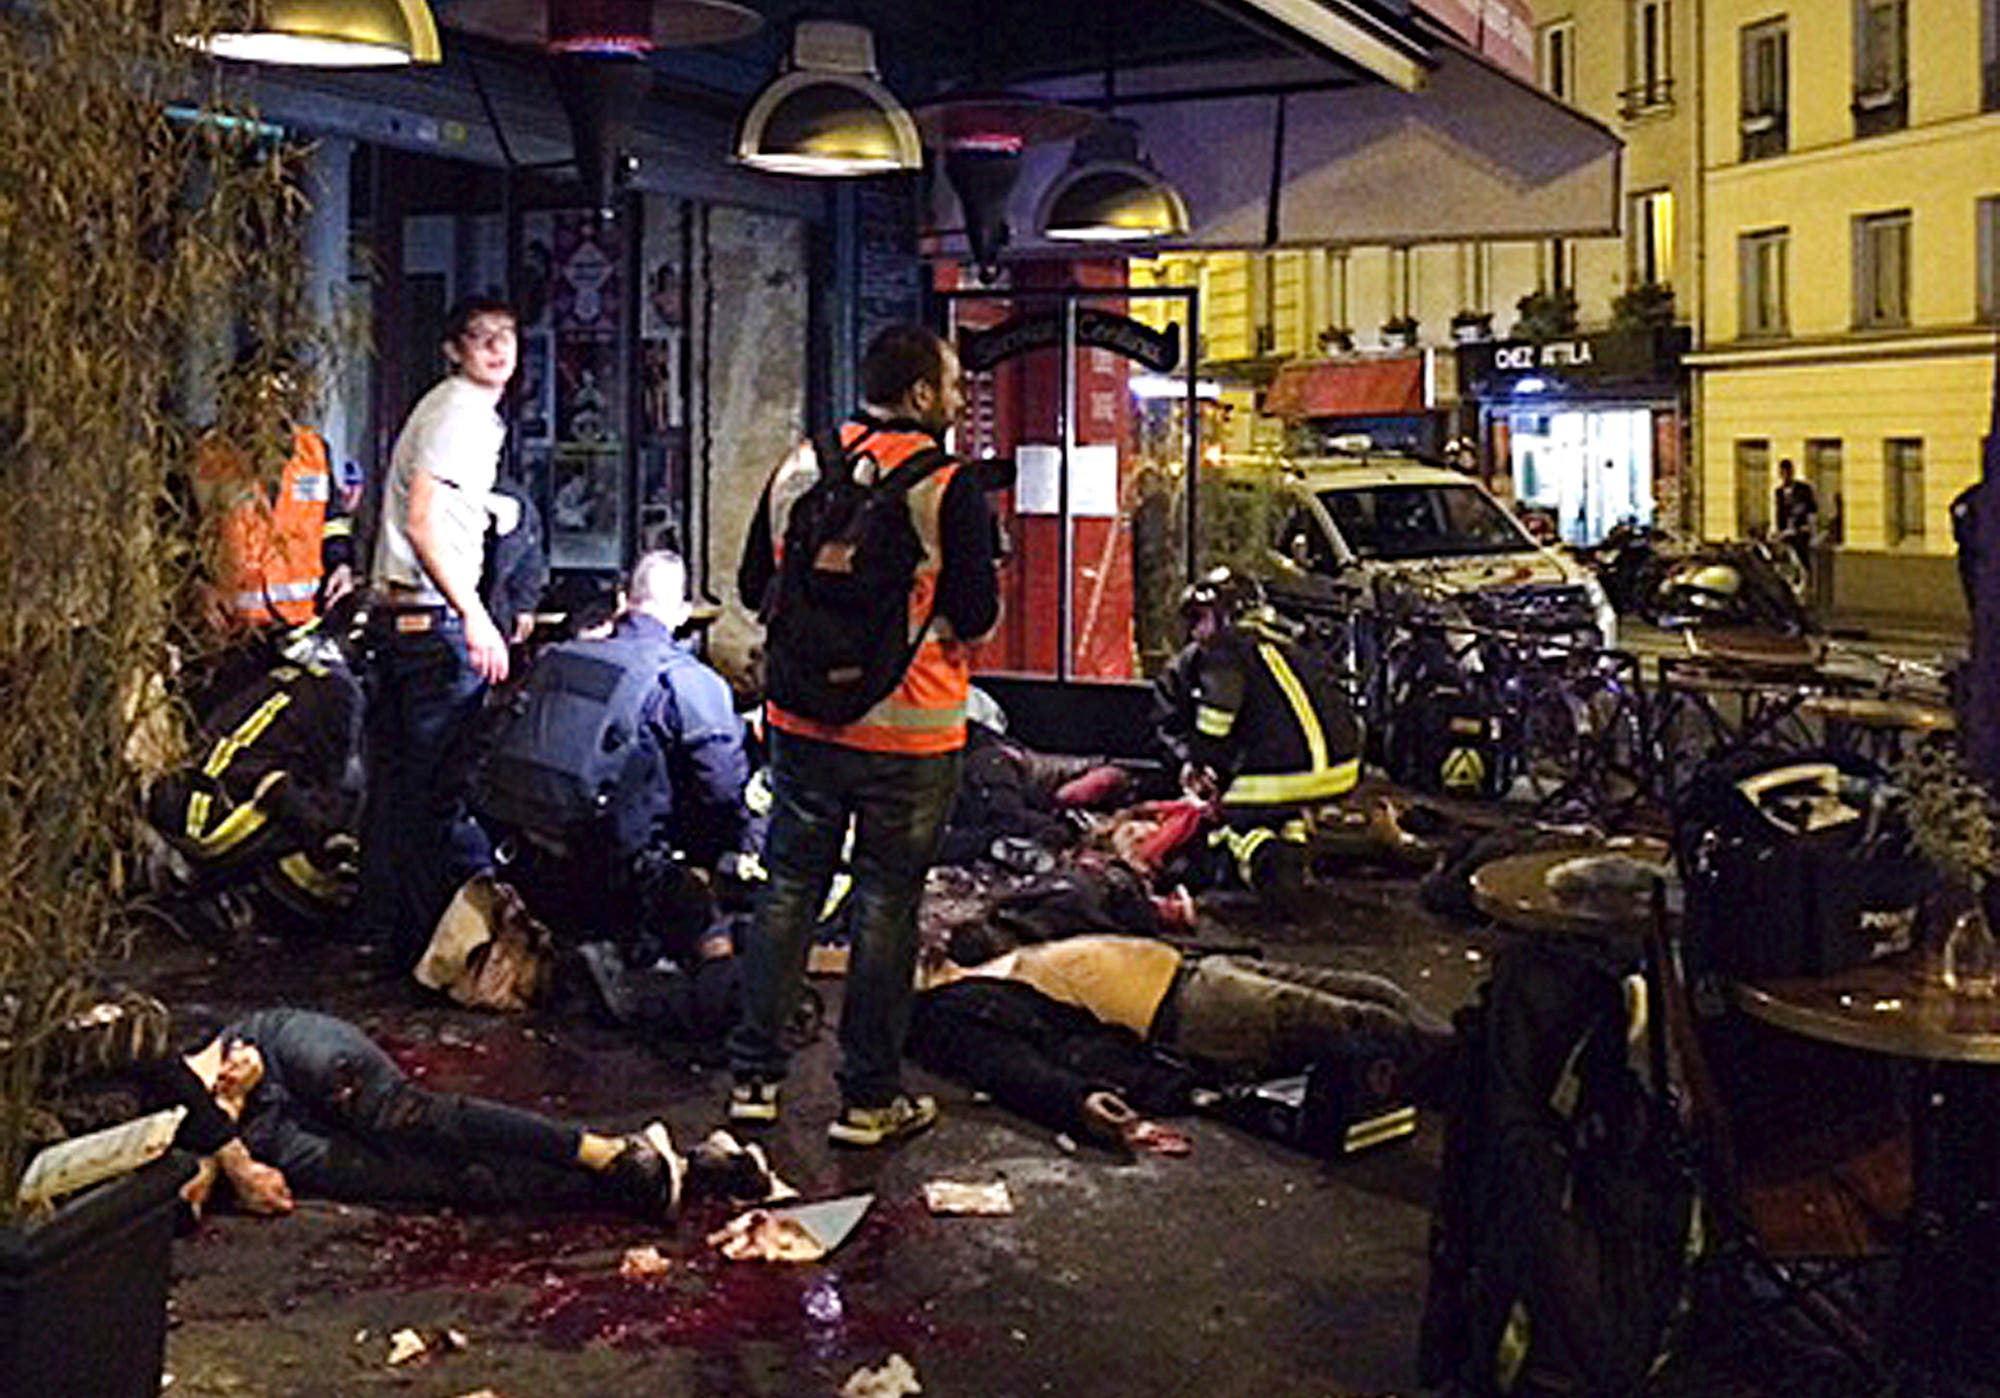 Victims of a shooting attack lay on the pavement outside La Belle Equipe restaurant in Paris Friday, Nov. 13, 2015. (AP)